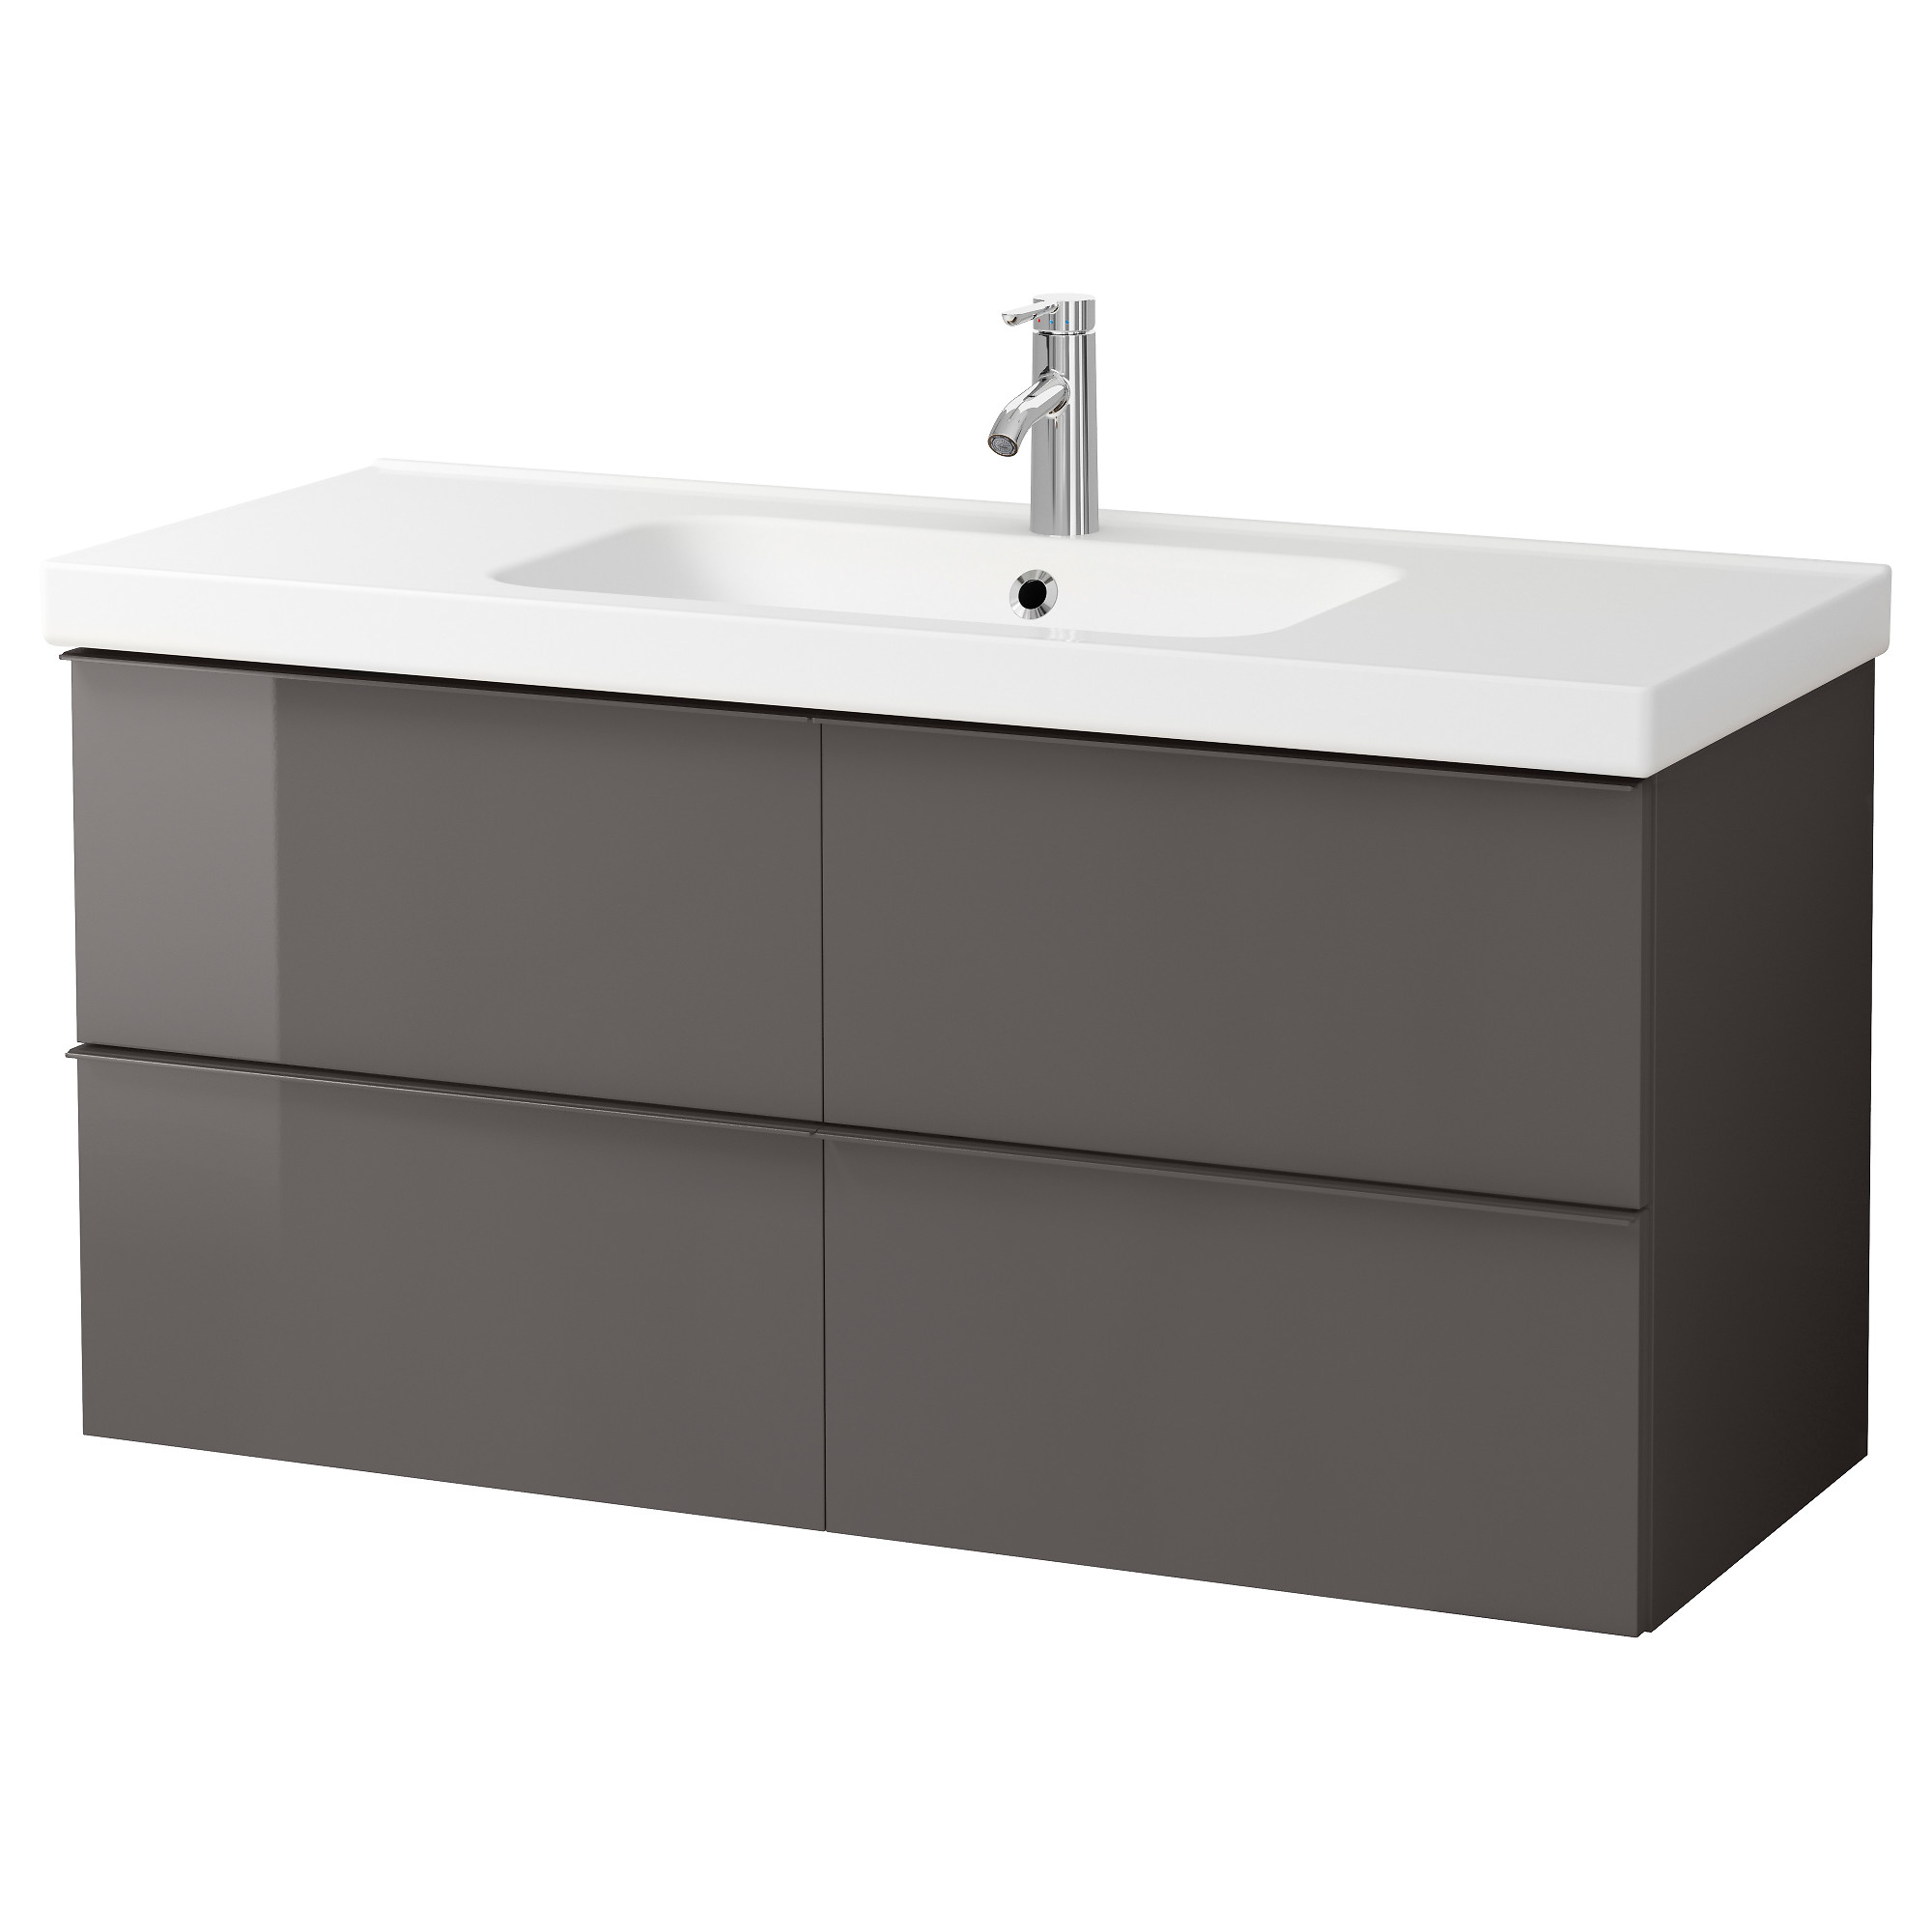 High Quality GODMORGON / ODENSVIK Sink Cabinet With 4 Drawers, High Gloss Gray Width: 48  3